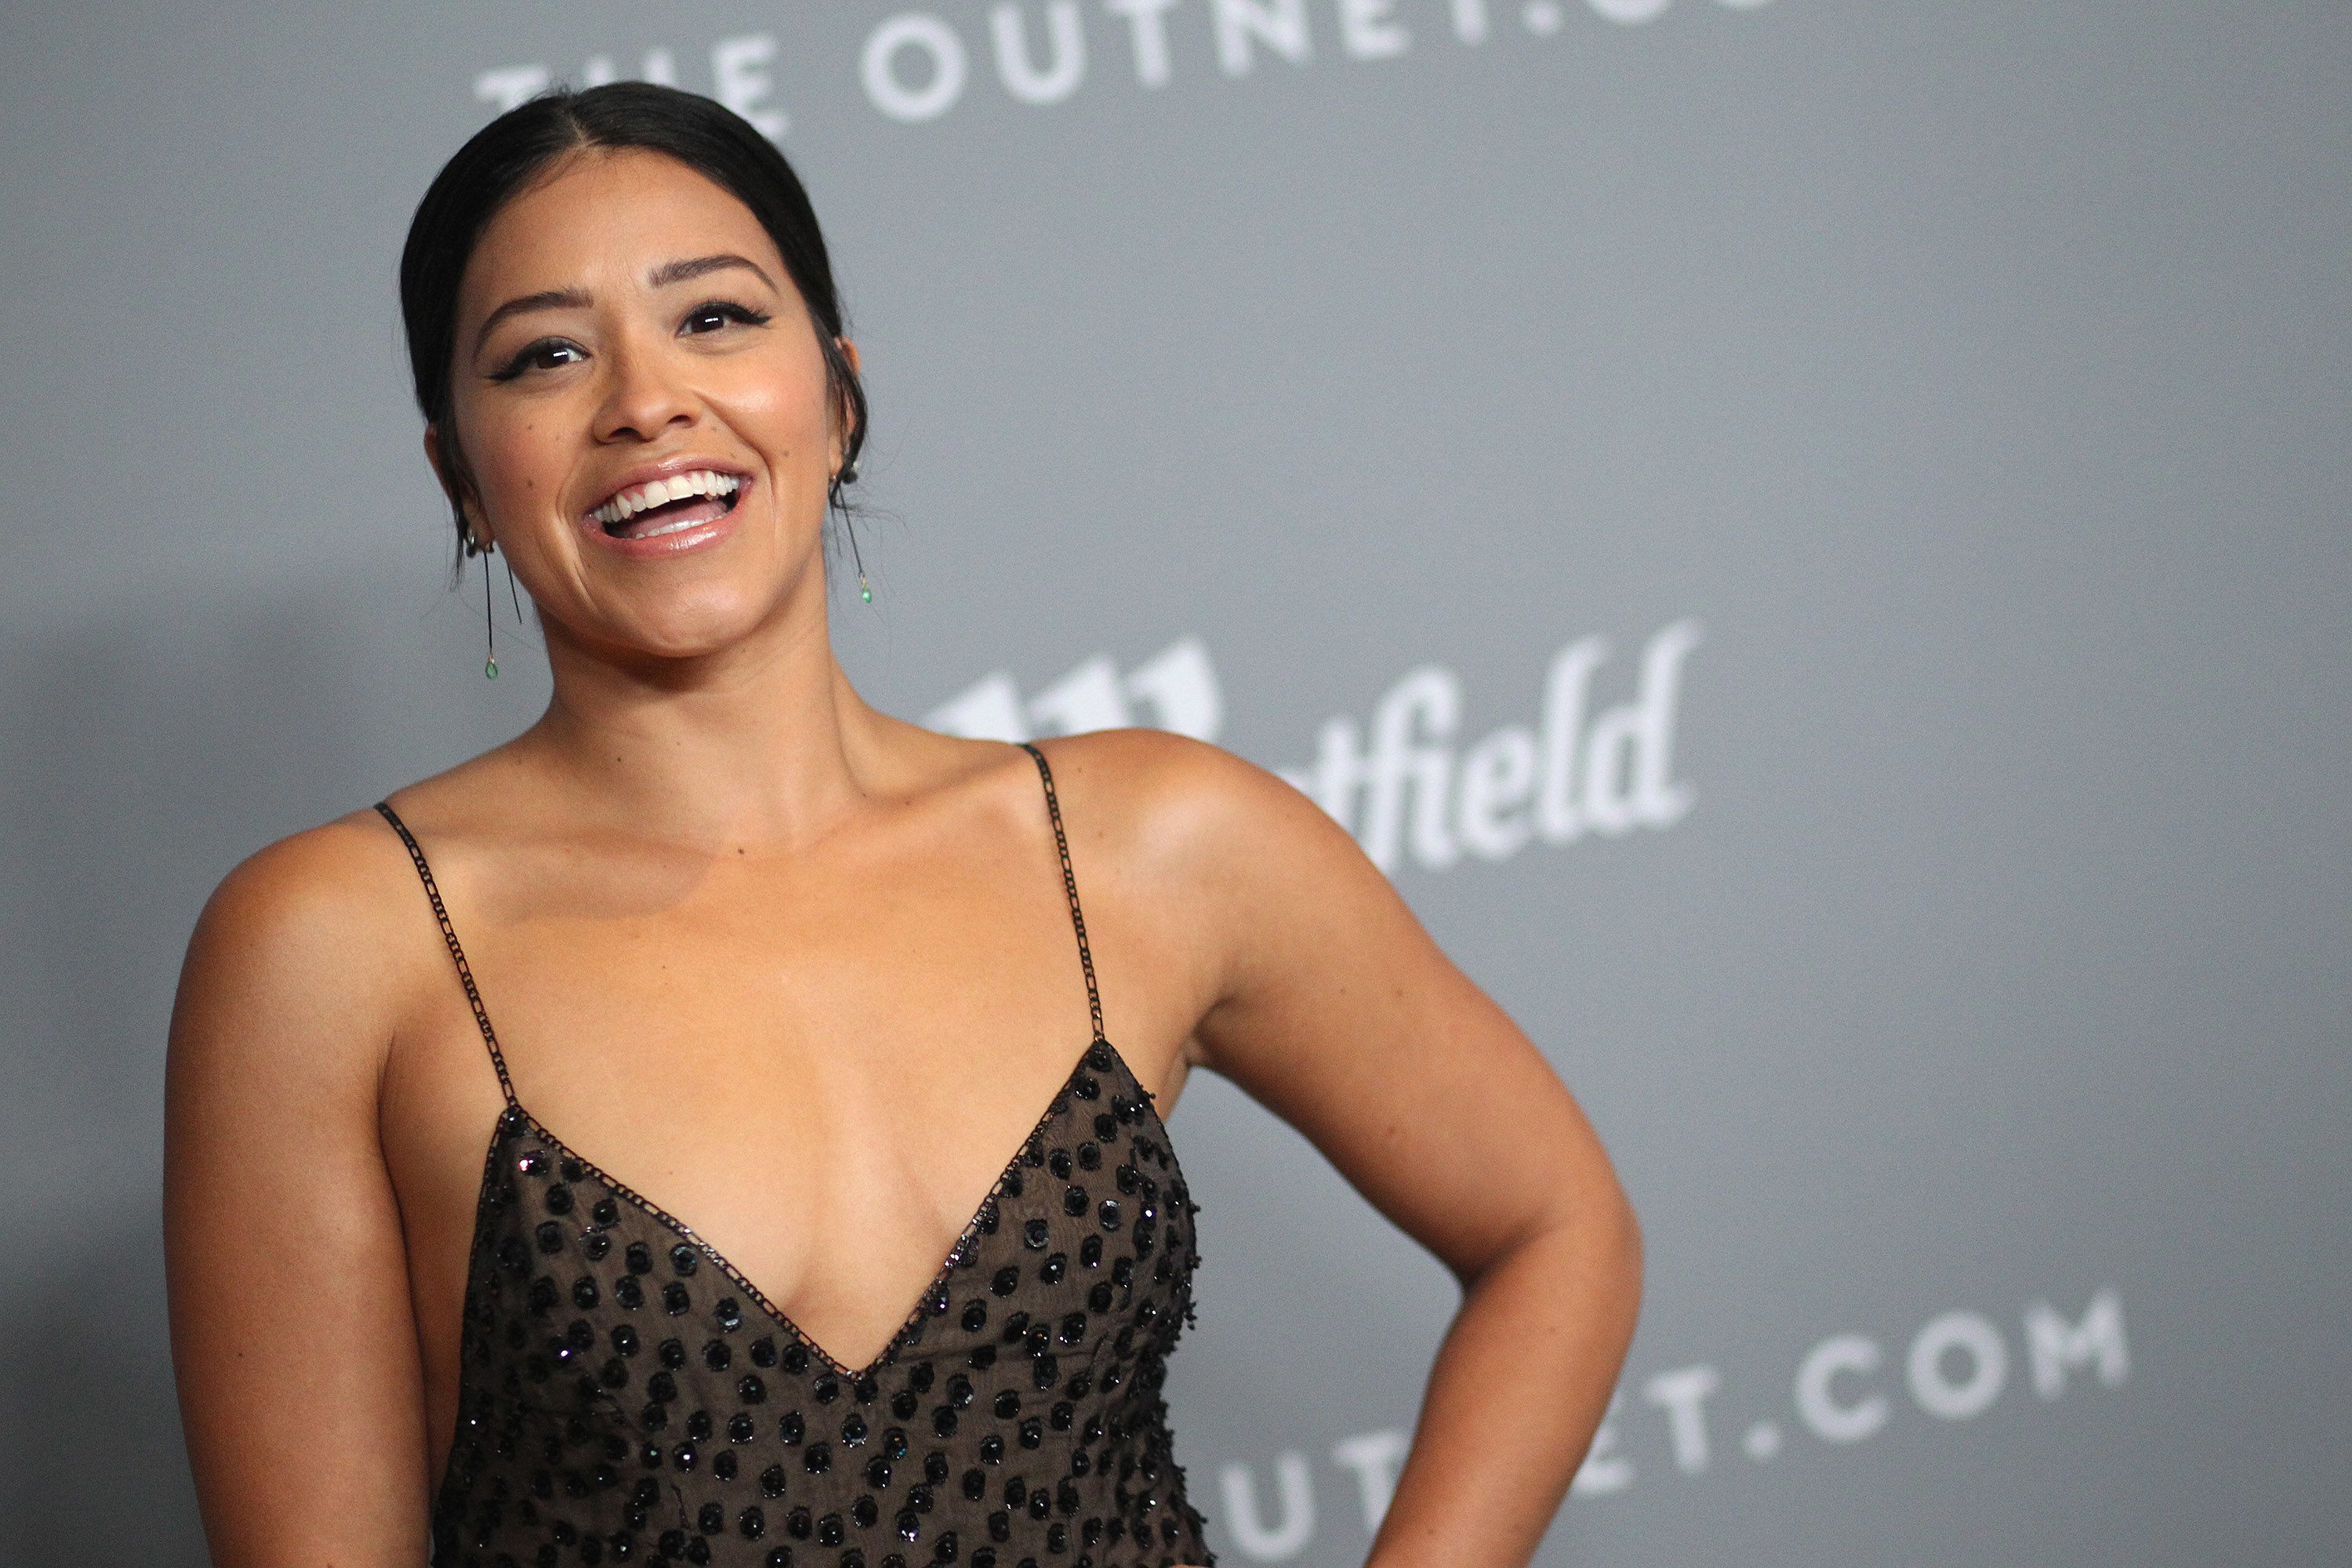 BEVERLY HILLS, CA - FEBRUARY 20:  Gina Rodriguez attends the 20th CDGA (Costume Designers Guild Awards) on February 20, 2018 in Beverly Hills, California.  (Photo by Tommaso Boddi/WireImage)